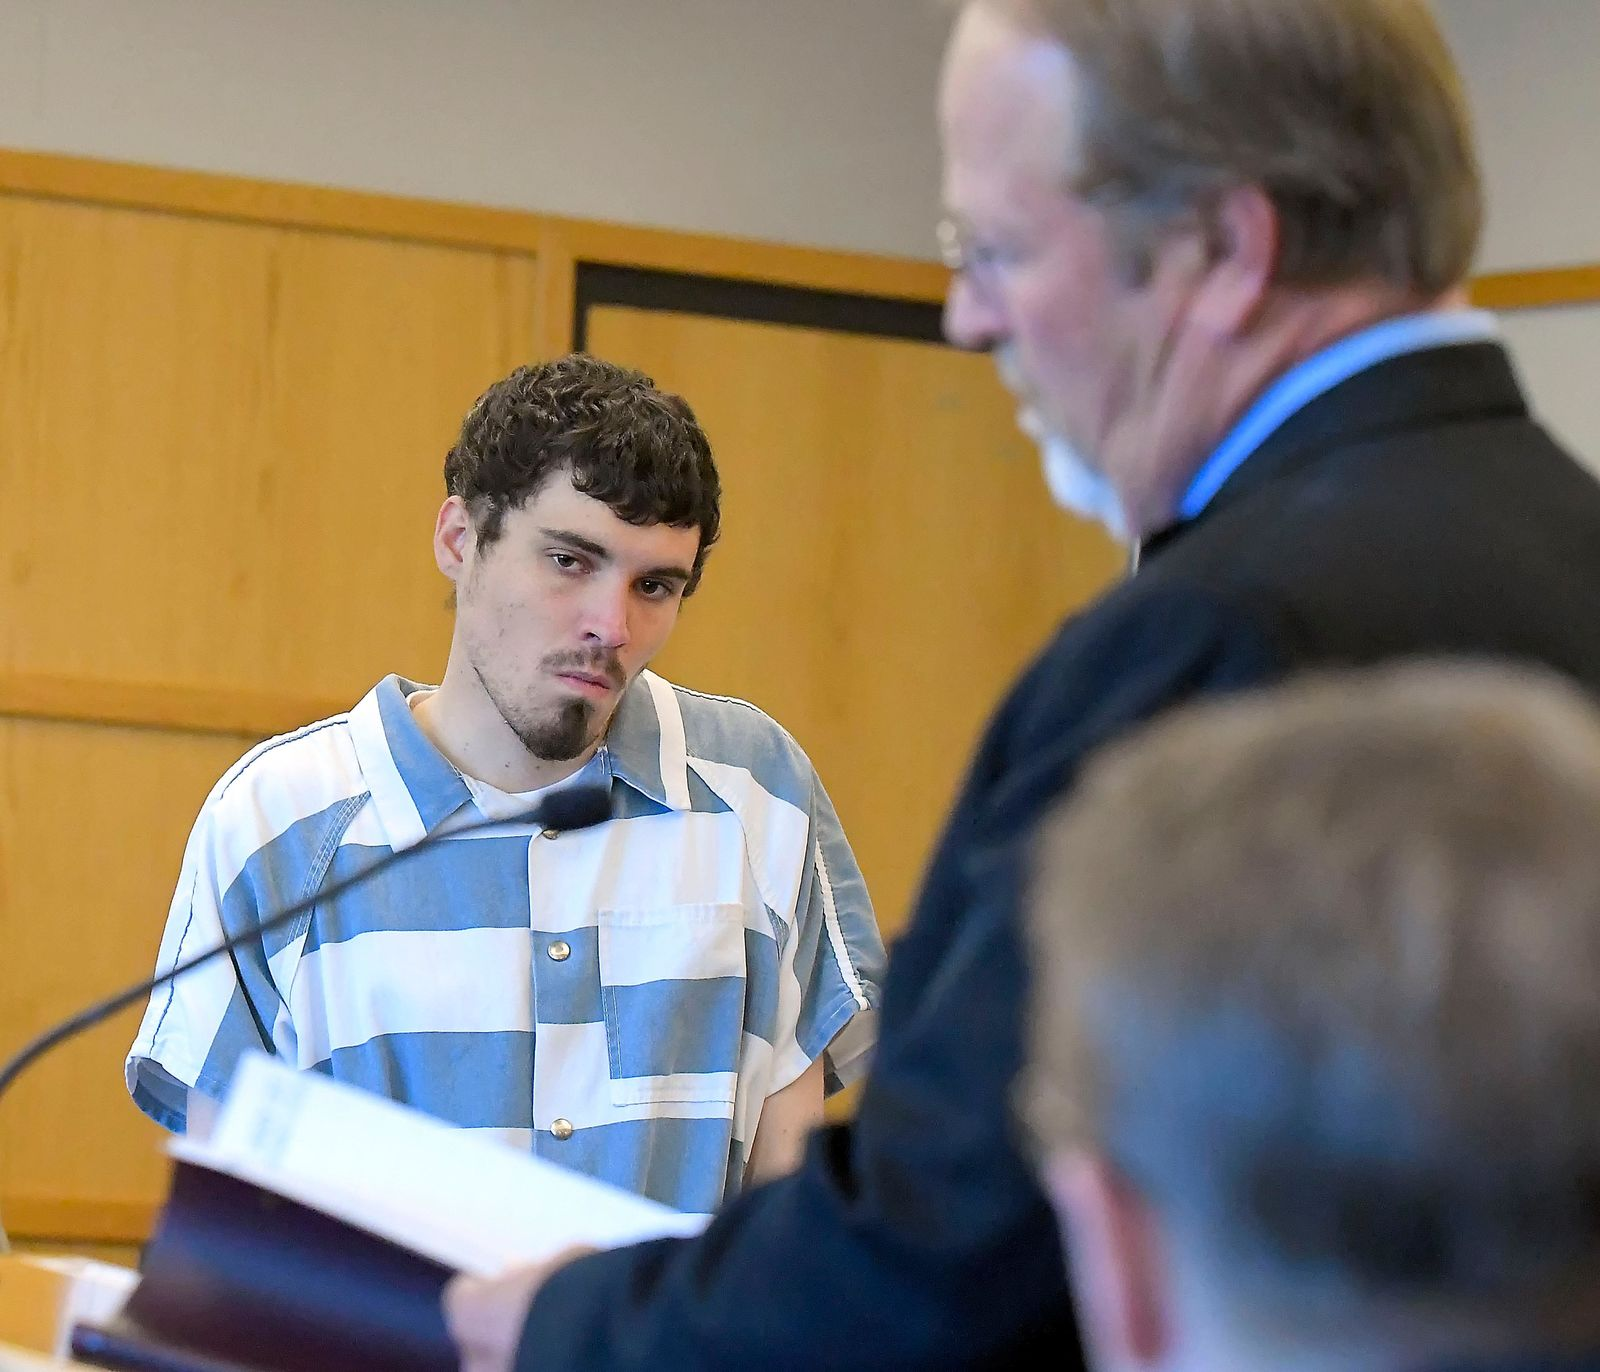 Alexander Whipple appears in 1st District Court for his initial appearance on Monday, June 3, 2019, in Logan, Utah. Whipple has been charged with five felonies including aggravated murder in connection with the death of 5-year-old Lizzy Shelley, who was found dead near her home on May 29.